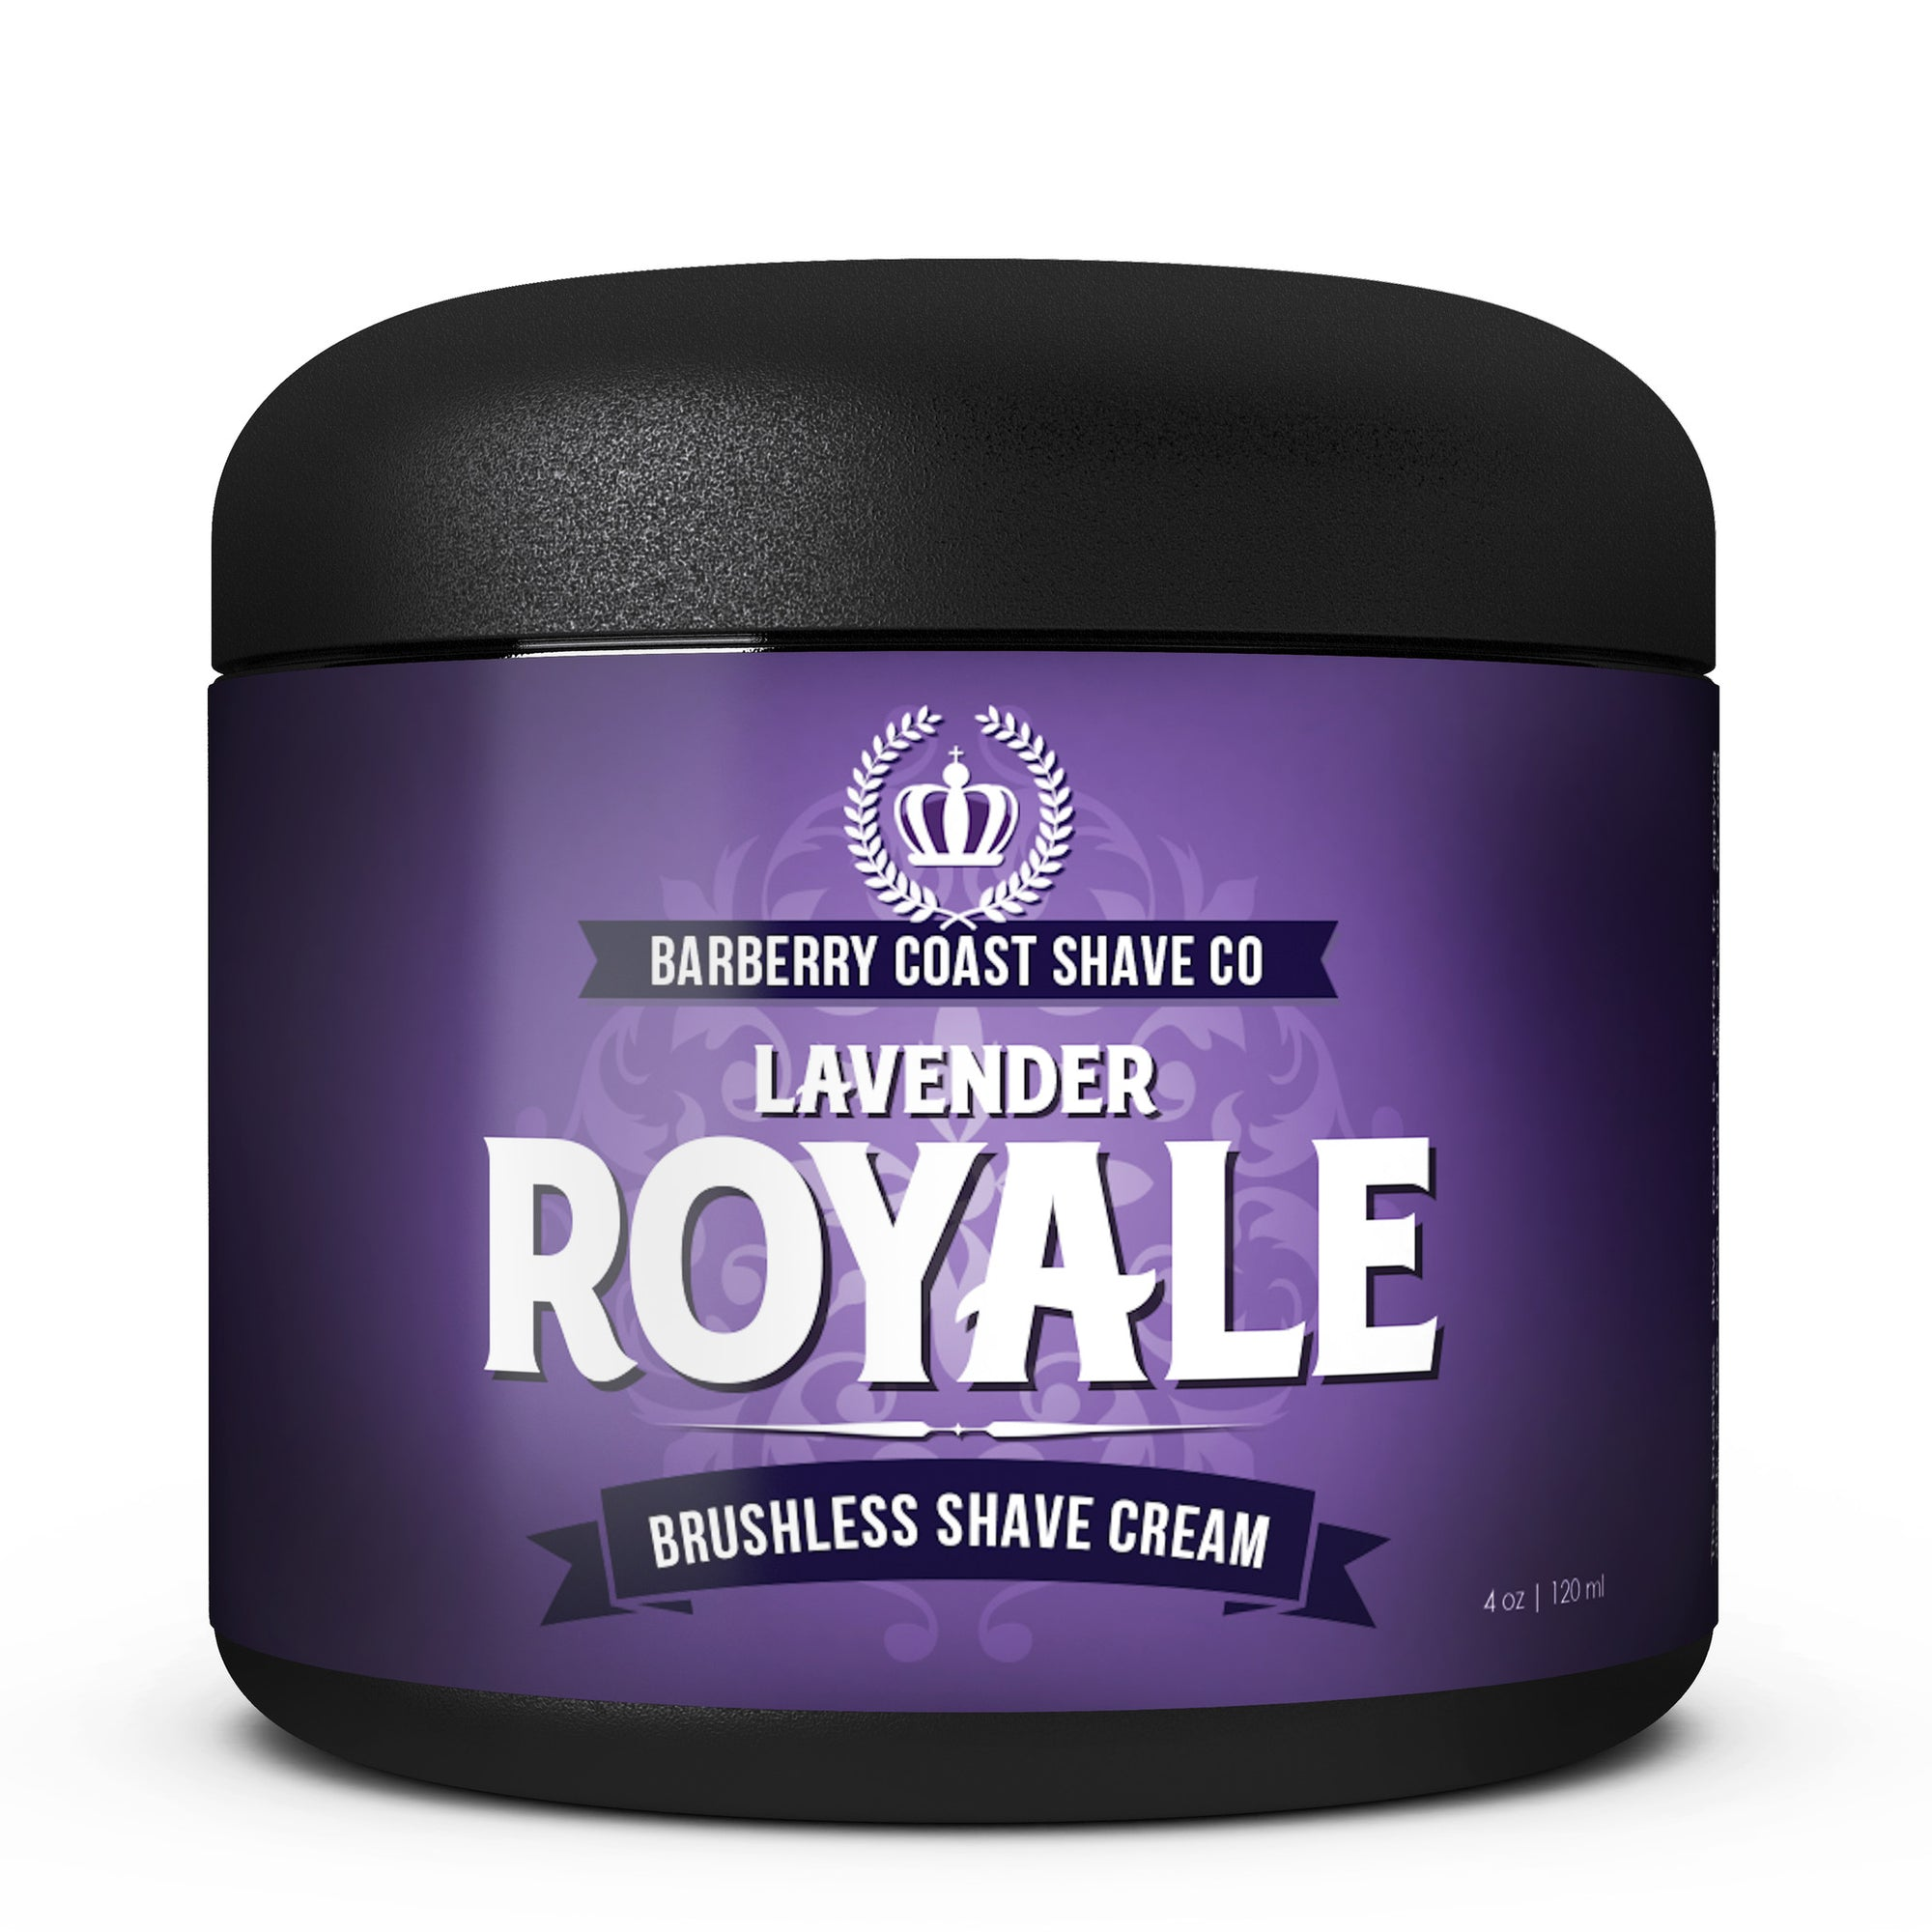 Lavender Royale Shave Cream